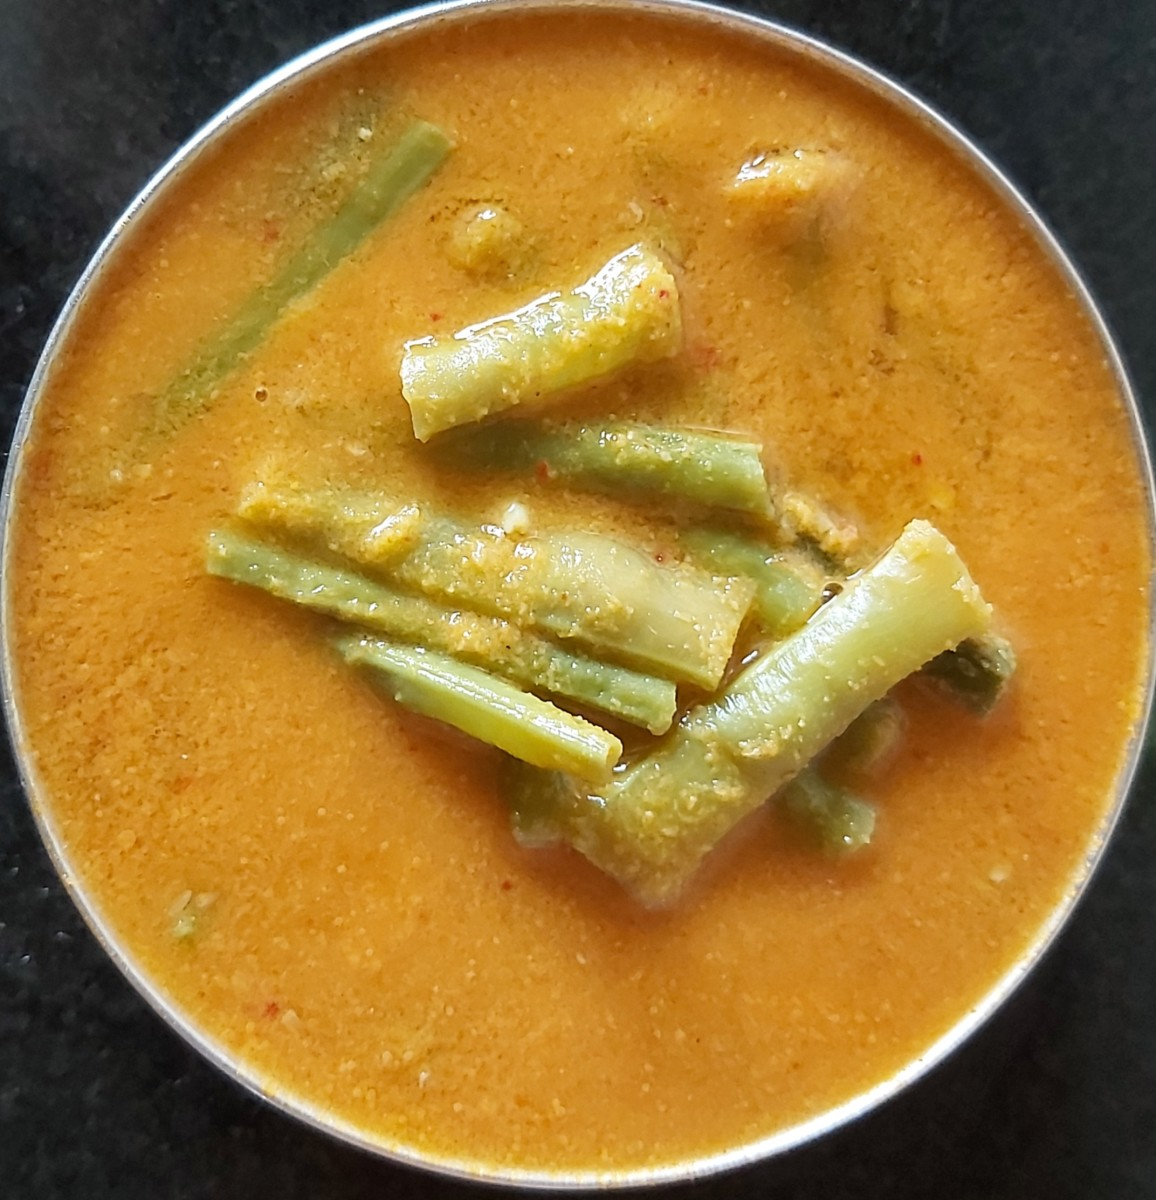 Mangalore-style sambar with long beans